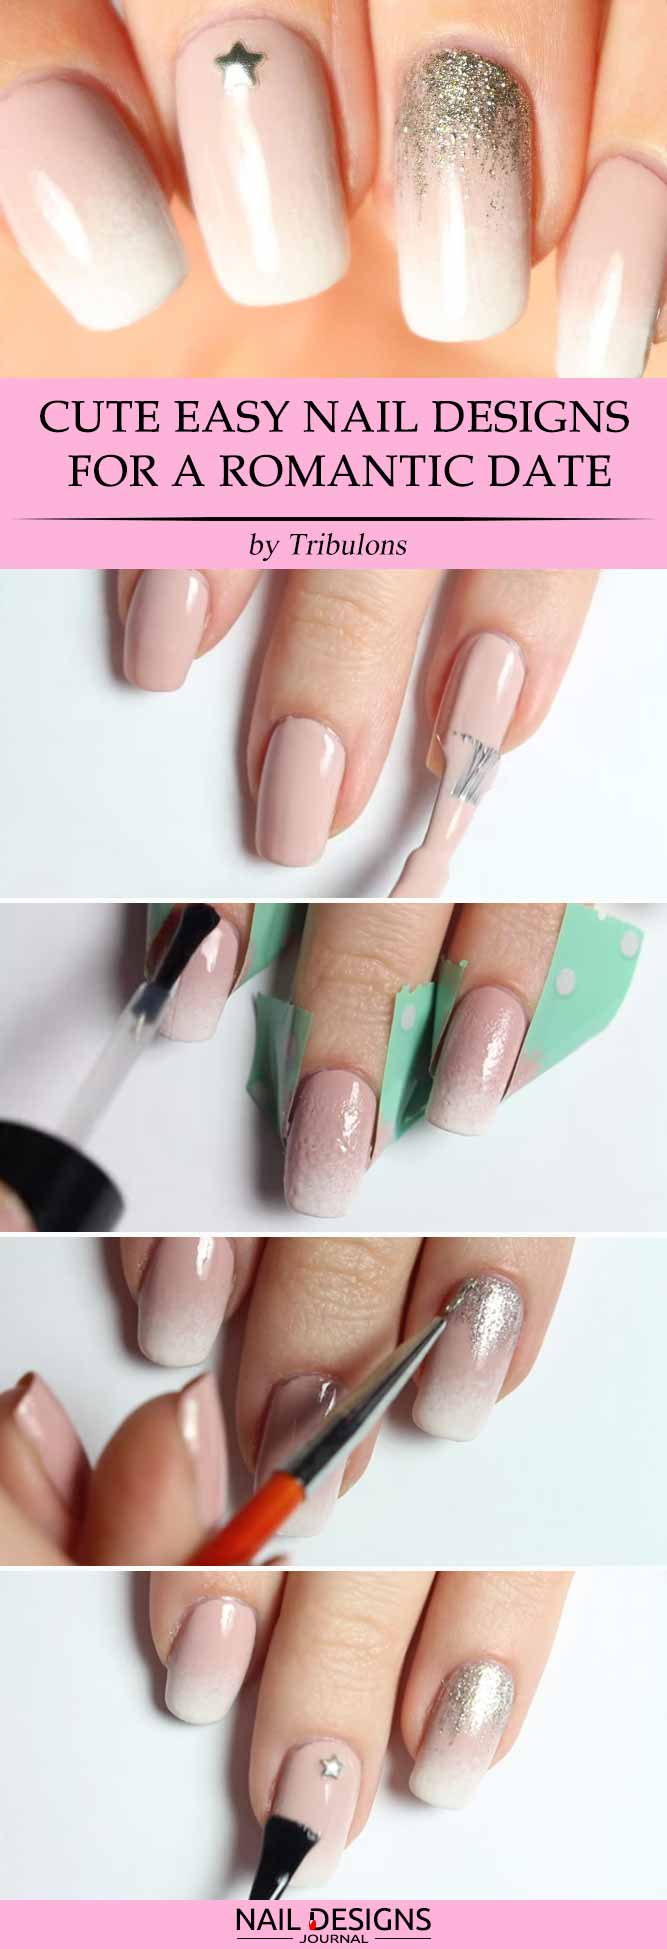 Cute Easy Nail Designs for a Romantic Date